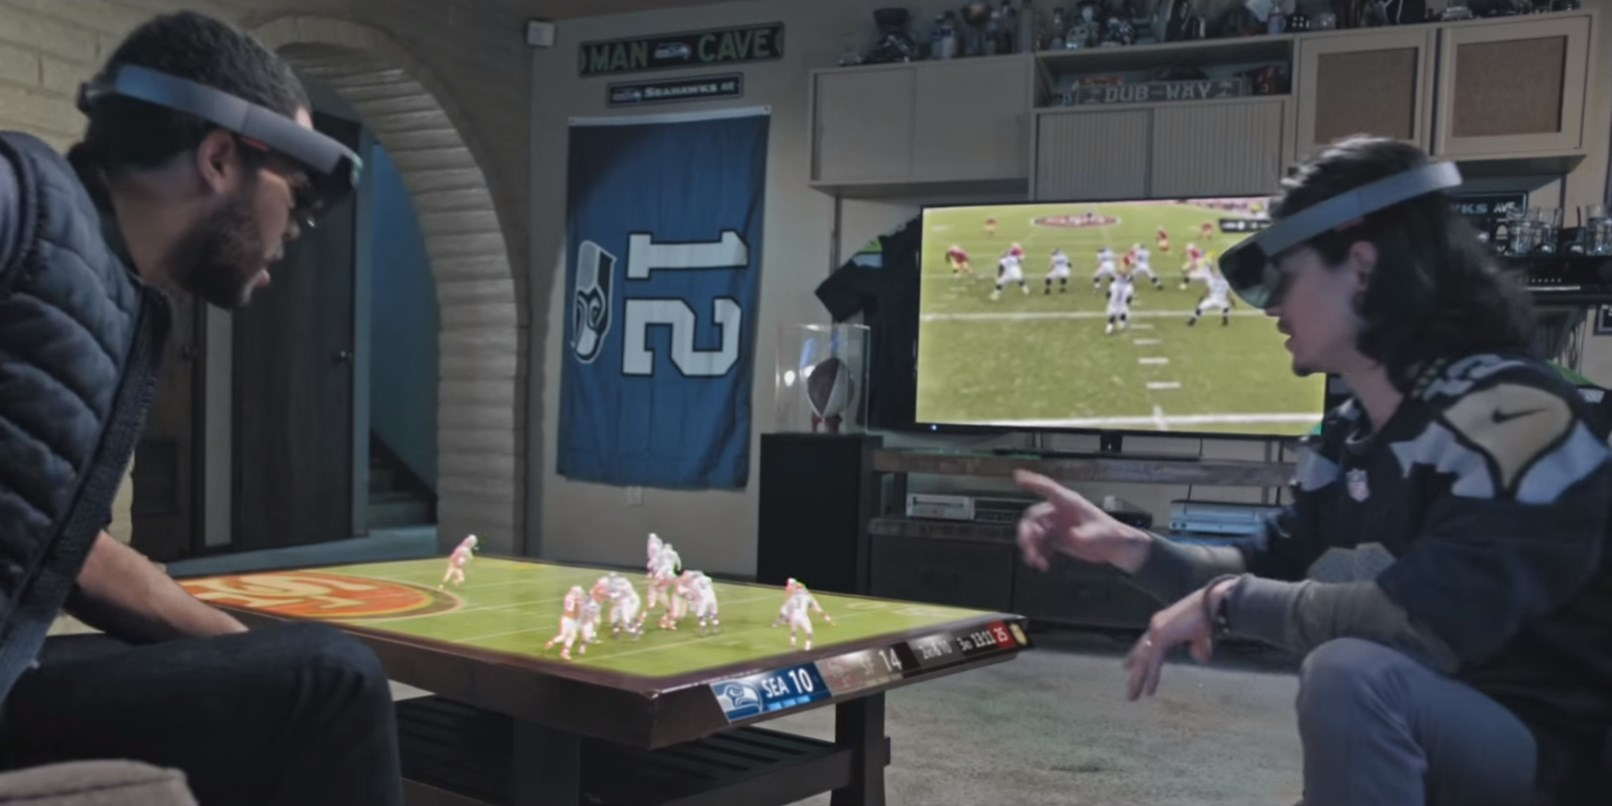 How Microsoft imagines you'll watch football games with HoloLens